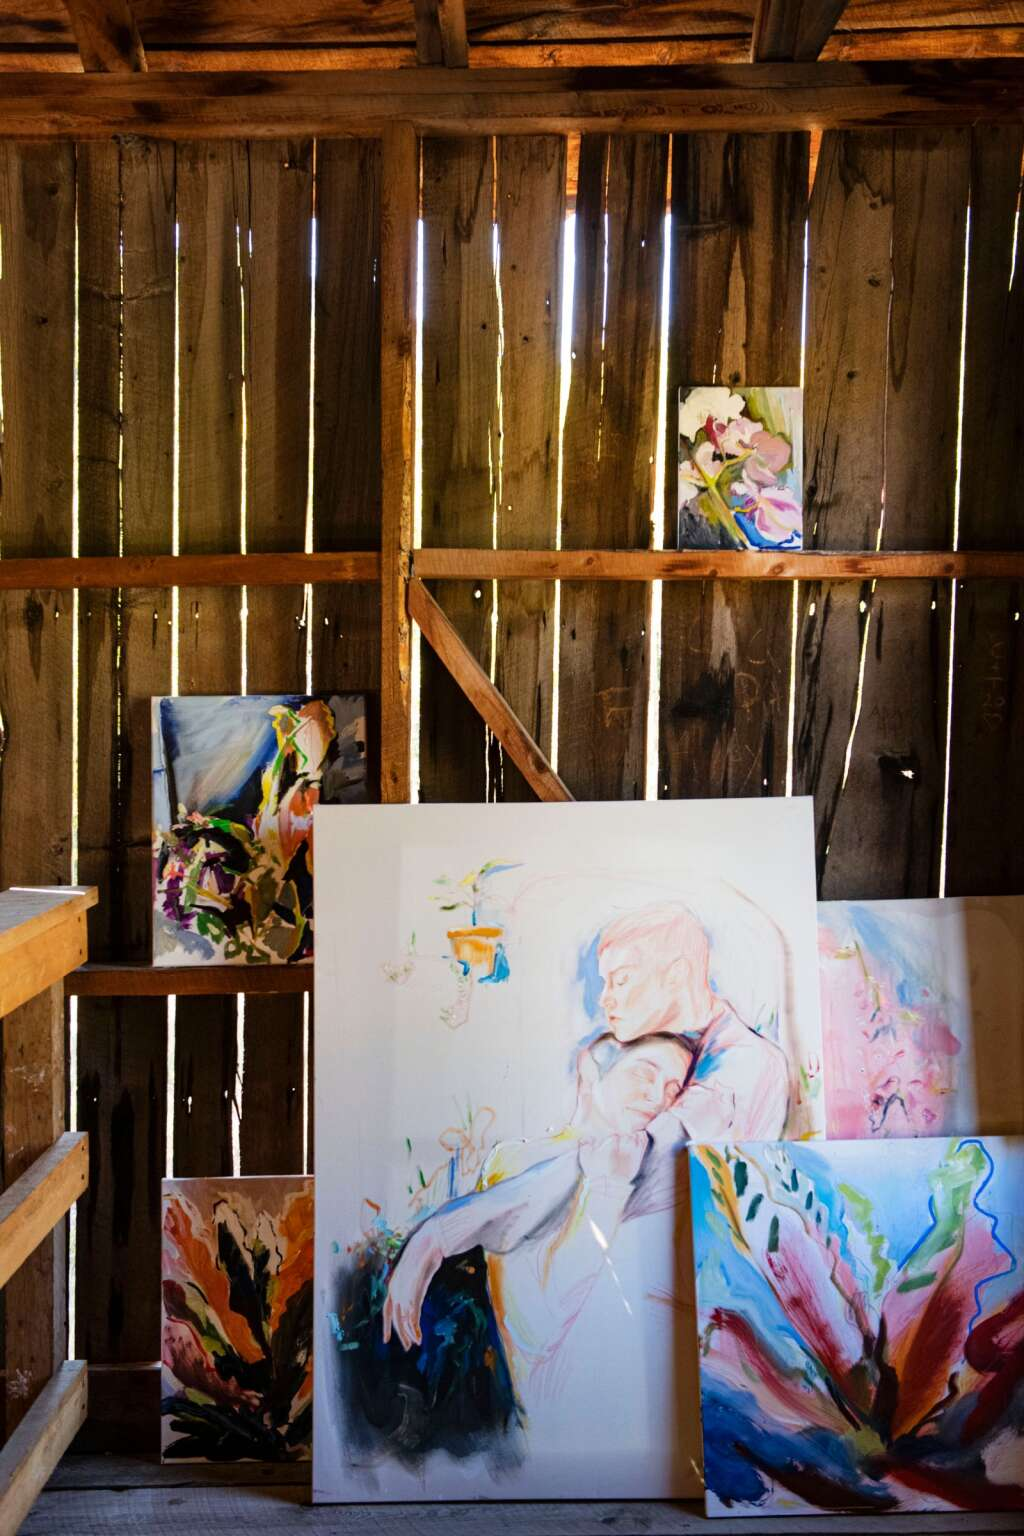 Paintings by Denver-based artist Kaitlyn Tucek leans against the wall of a building in the Ashcroft Ghost Town outside of Aspen as part of her two-day exhibition 'The Lilac Hour' outside of Aspen on Friday, Sept. 17, 2021. (Kelsey Brunner/The Aspen Times)